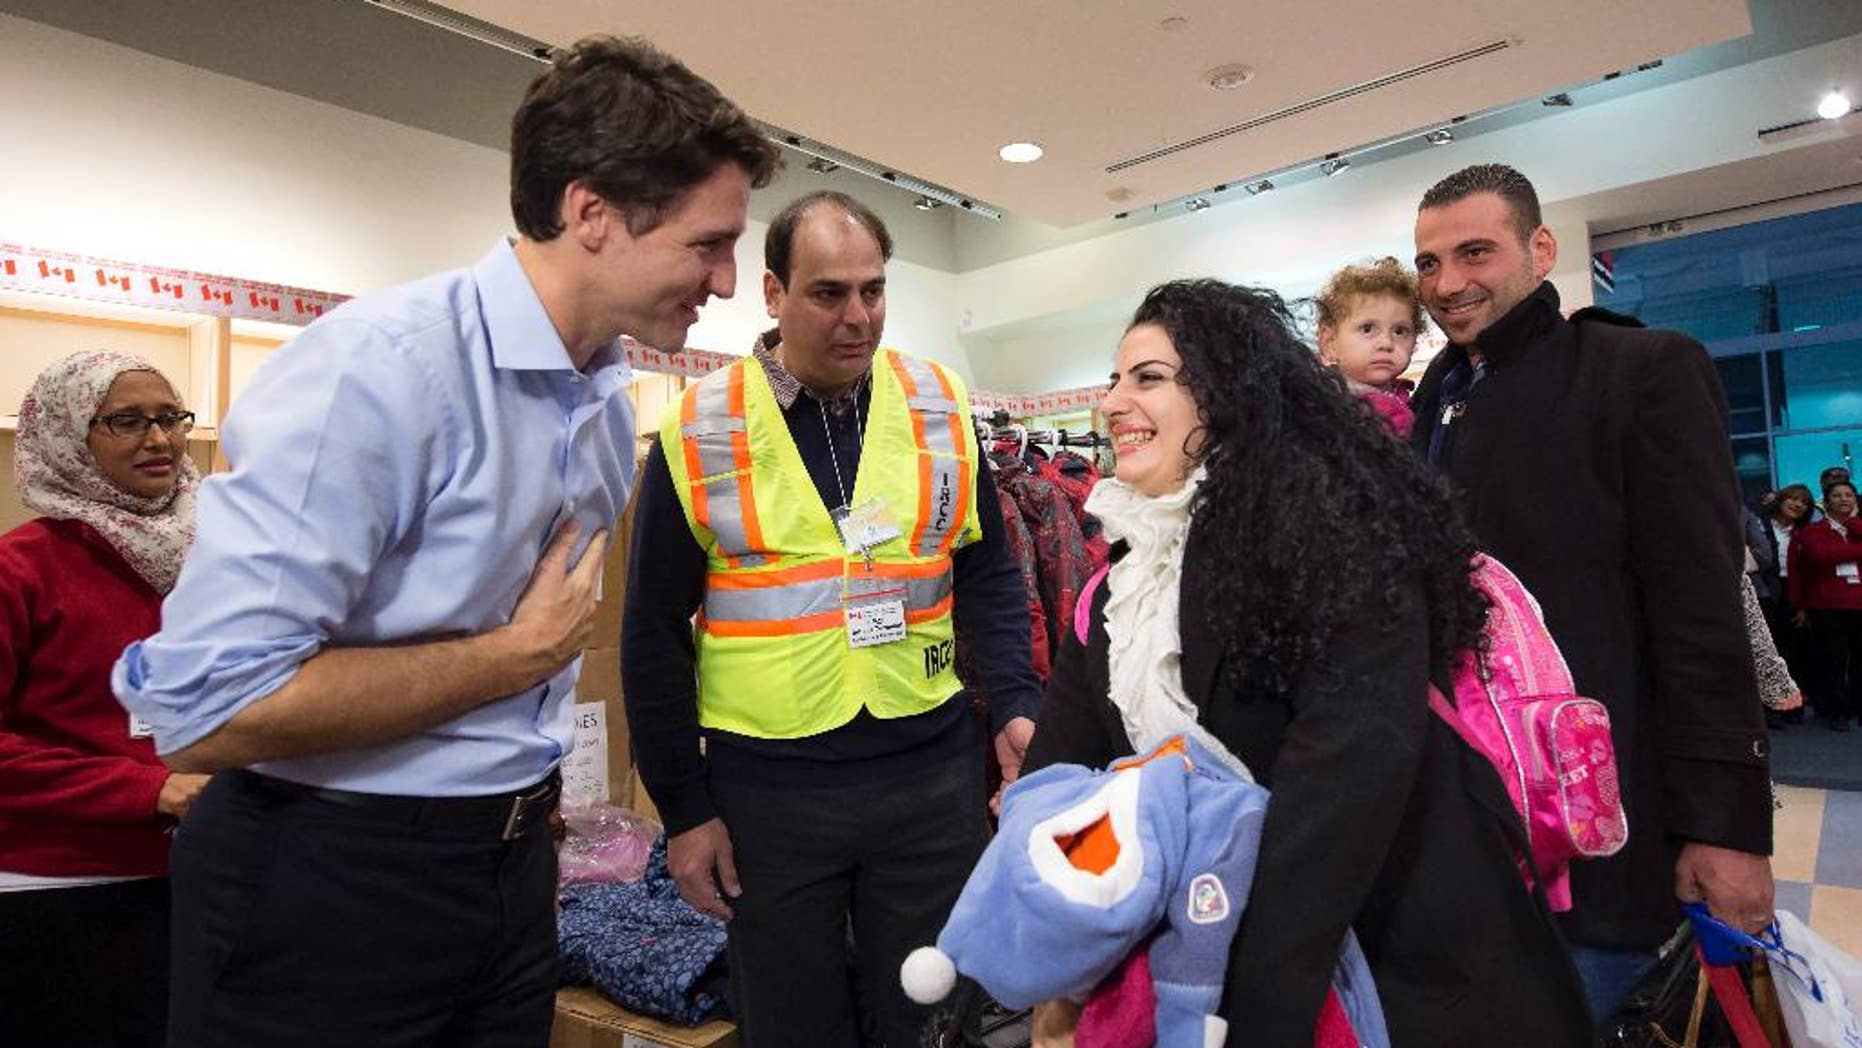 """FILE - In this Dec. 11, 2015 file photo, Prime Minister Justin Trudeau, left, greets Georgina Zires, center, Madeleine Jamkossian, second right, and her father Kevork Jamkossian, refugees fleeing from Syria, as they arrive at Pearson International airport, in Toronto. Trudeau has a message for refugees rejected by U.S. President Donald Trump: Canada will take you. He also intends to talk to Trump about the success of Canada's refugee policy. Trudeau reacted to Trump's ban of Muslims from certain countries by tweeting Saturday: """"To those fleeing persecution, terror & war, Canadians will welcome you, regardless of your faith. Diversity is our strength #WelcomeToCanada."""" (Nathan Denette/The Canadian Press via AP, File)"""